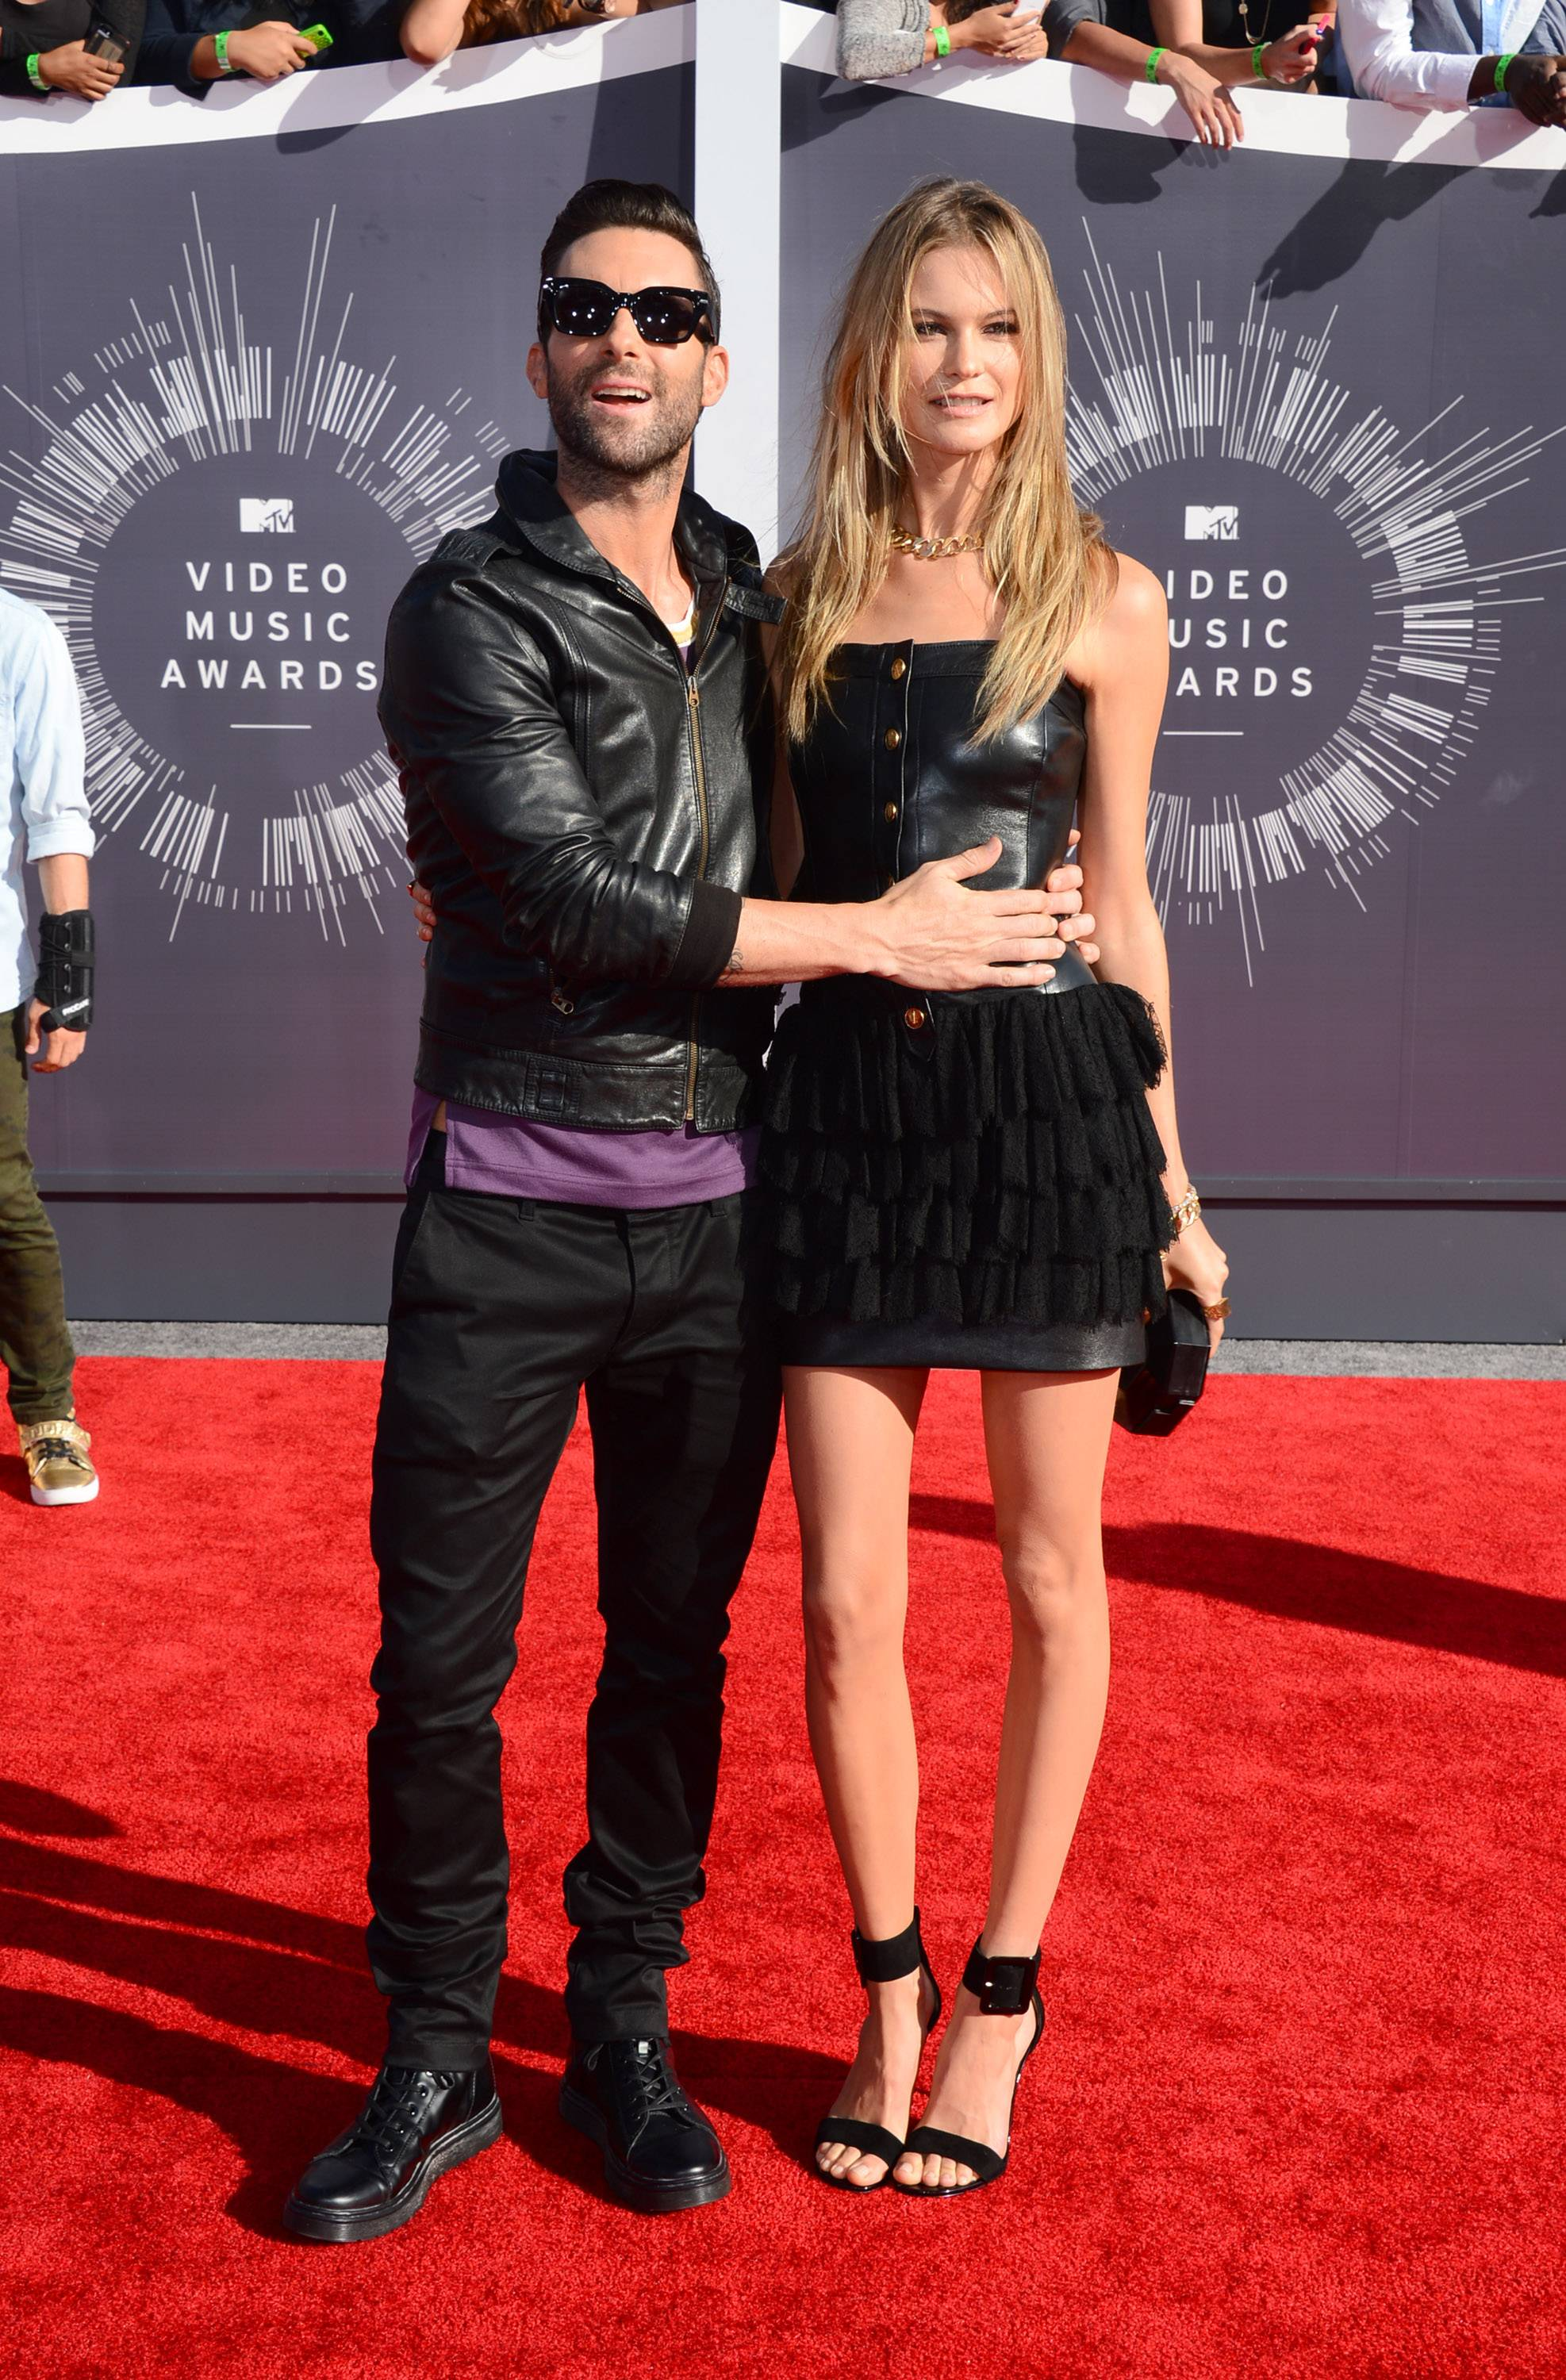 Adam Levine, left, and Behati Prinsloo arrive at the MTV Video Music Awards.